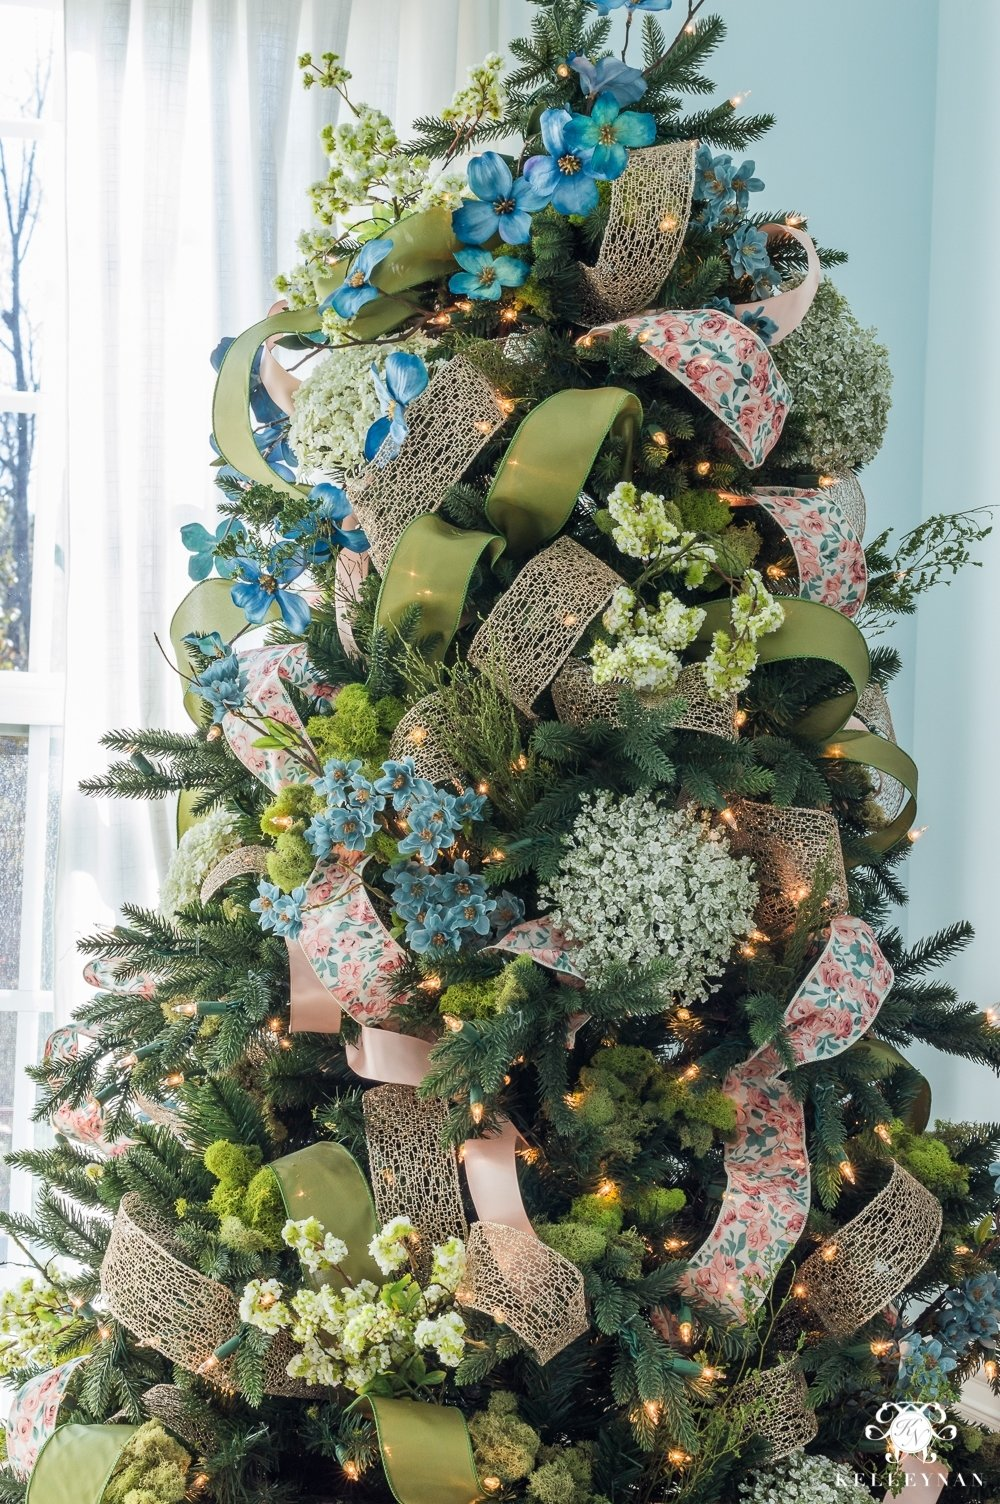 10 Attractive Decorating Christmas Tree With Ribbon Ideas how to decorate a christmas tree with ribbon kelley nan 3 2021